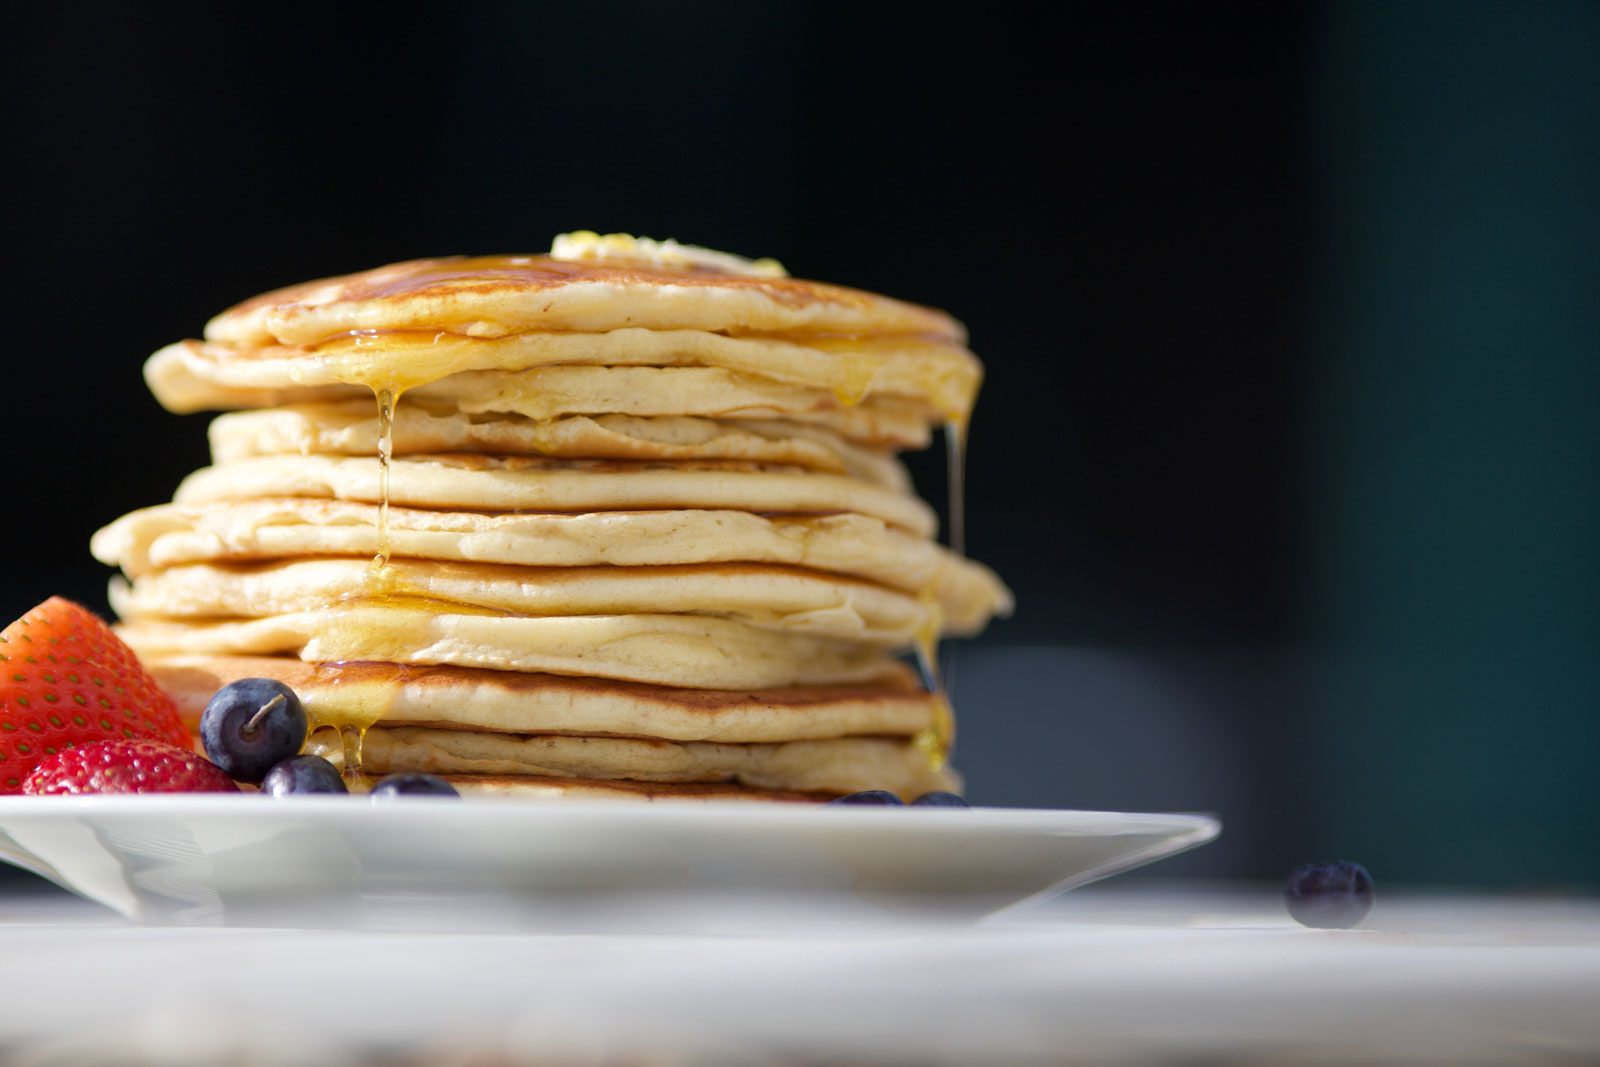 Banana Pancakes with Blueberries & Maple Syrup | Breakfast Is Served: 6 Quick & Easy Vegan Breakfast Recipes